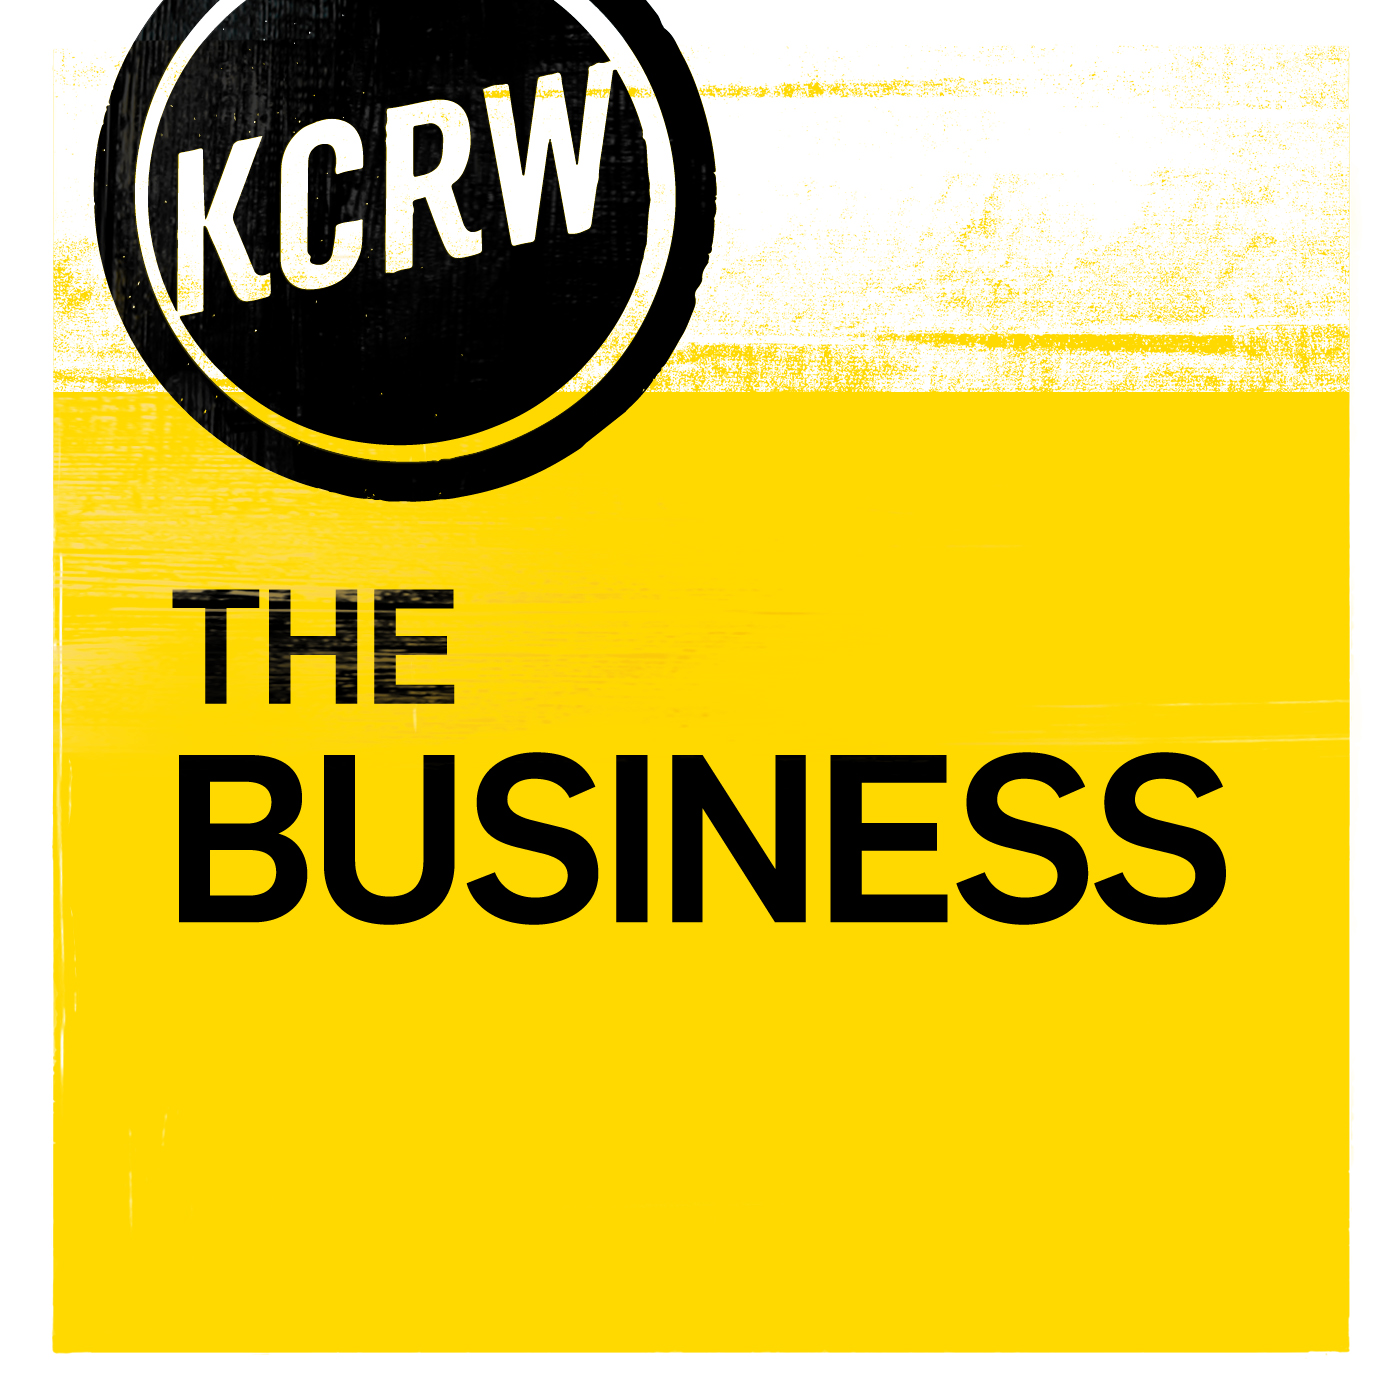 KCRW The Business 19915716.jpg